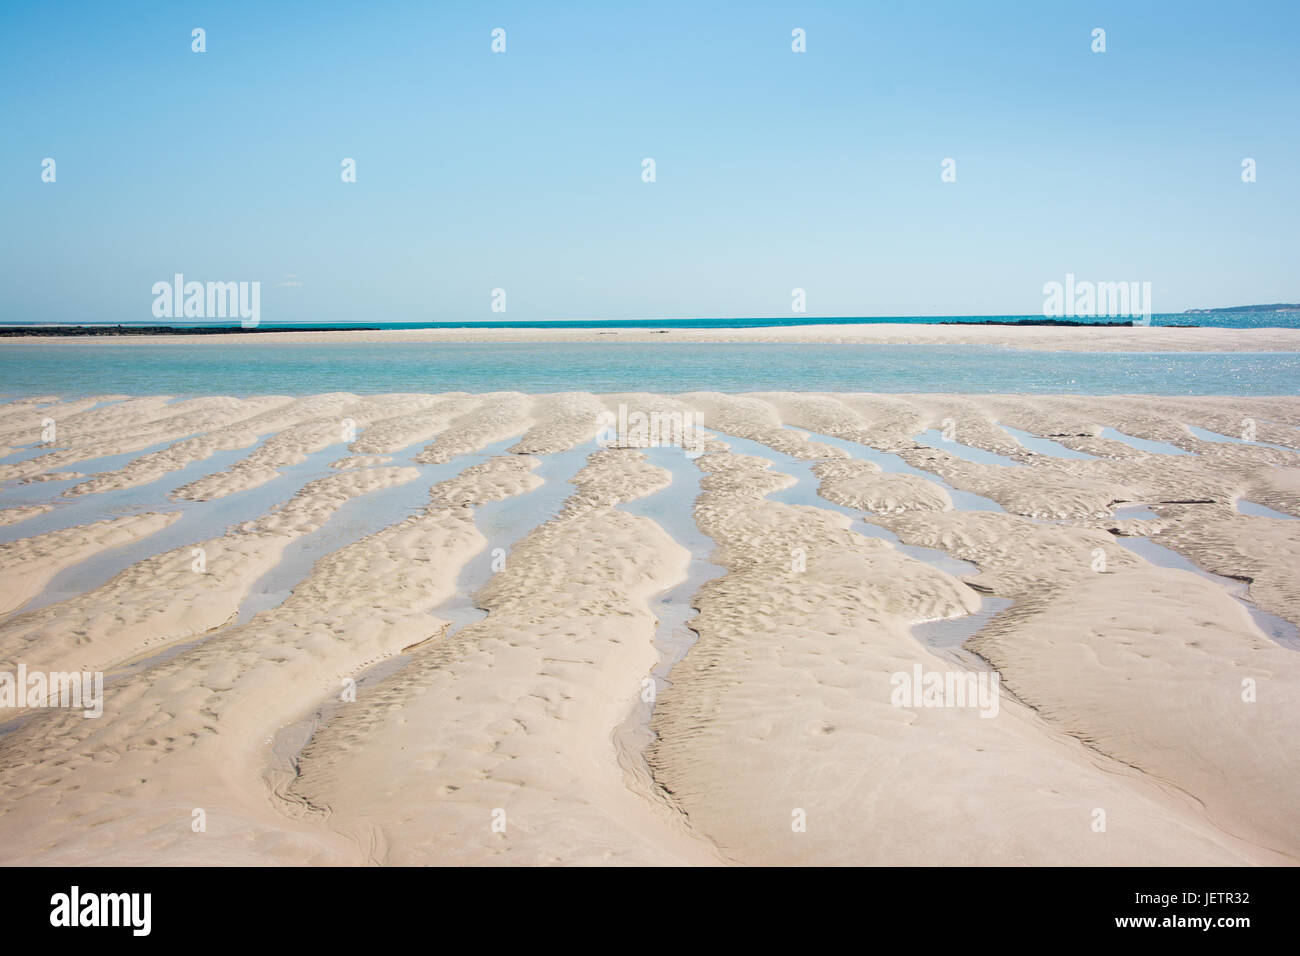 Patterns in the sand and bright blue sky, on a desert island off the coast of Mozambique - Stock Image